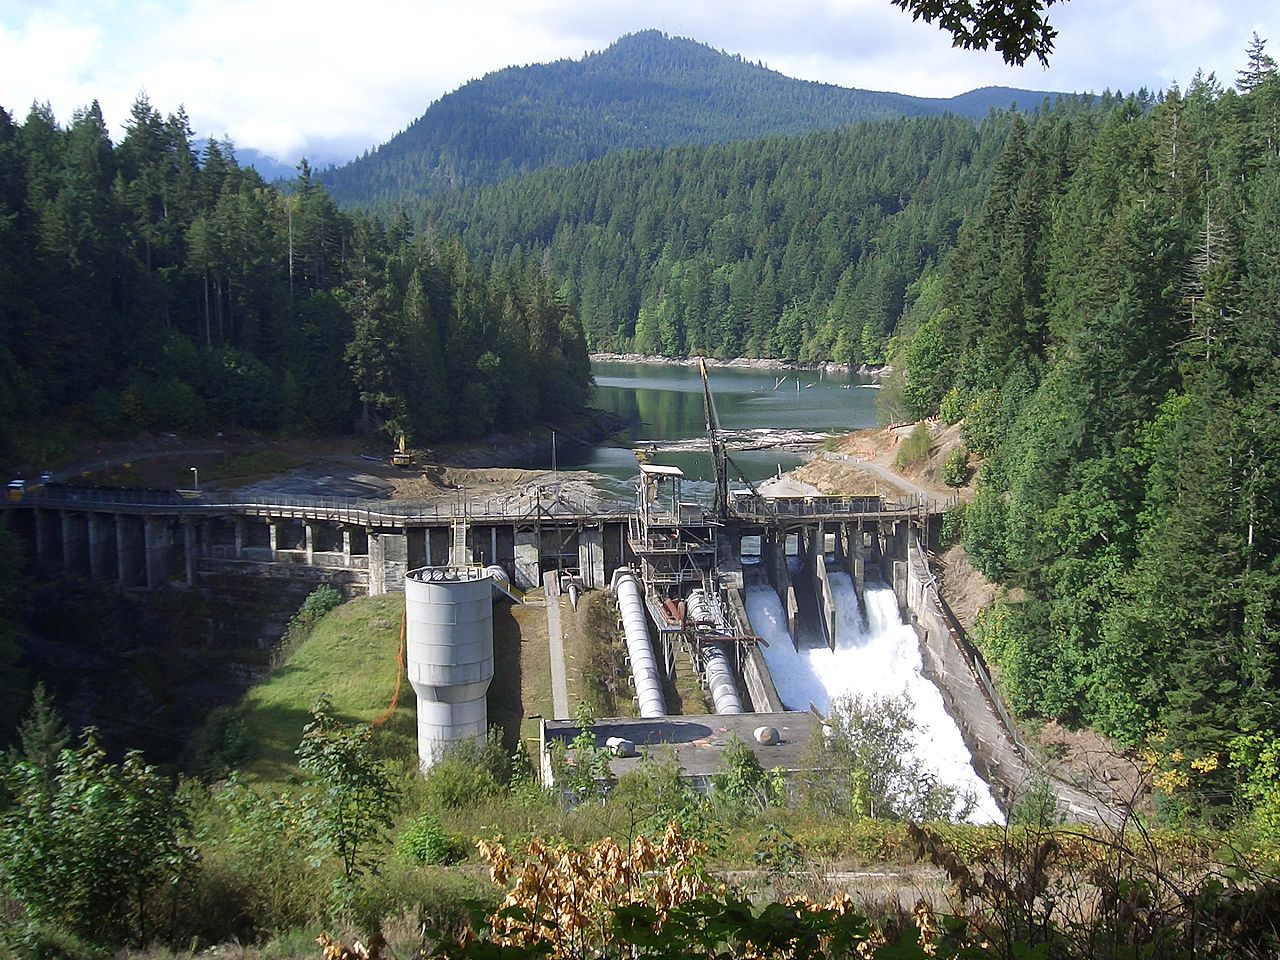 Lower Elwha Klallam Tribe sees benefits from removal of dams